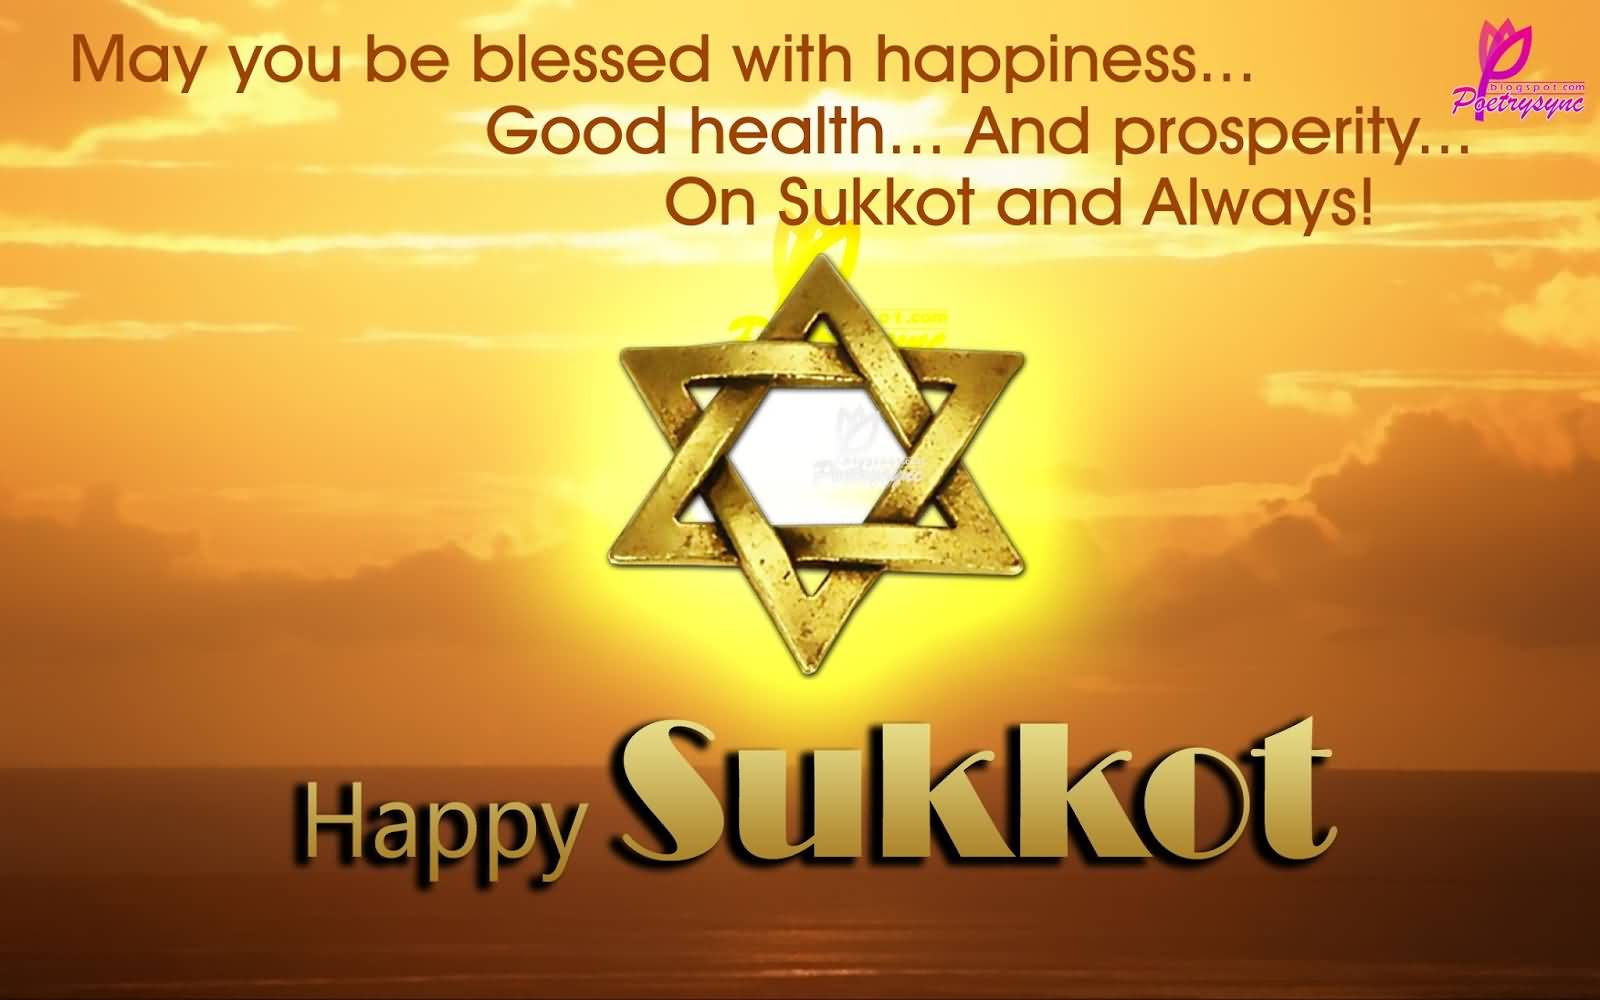 42 Best Pictures And Images Of Happy Sukkot 2016 Greetings